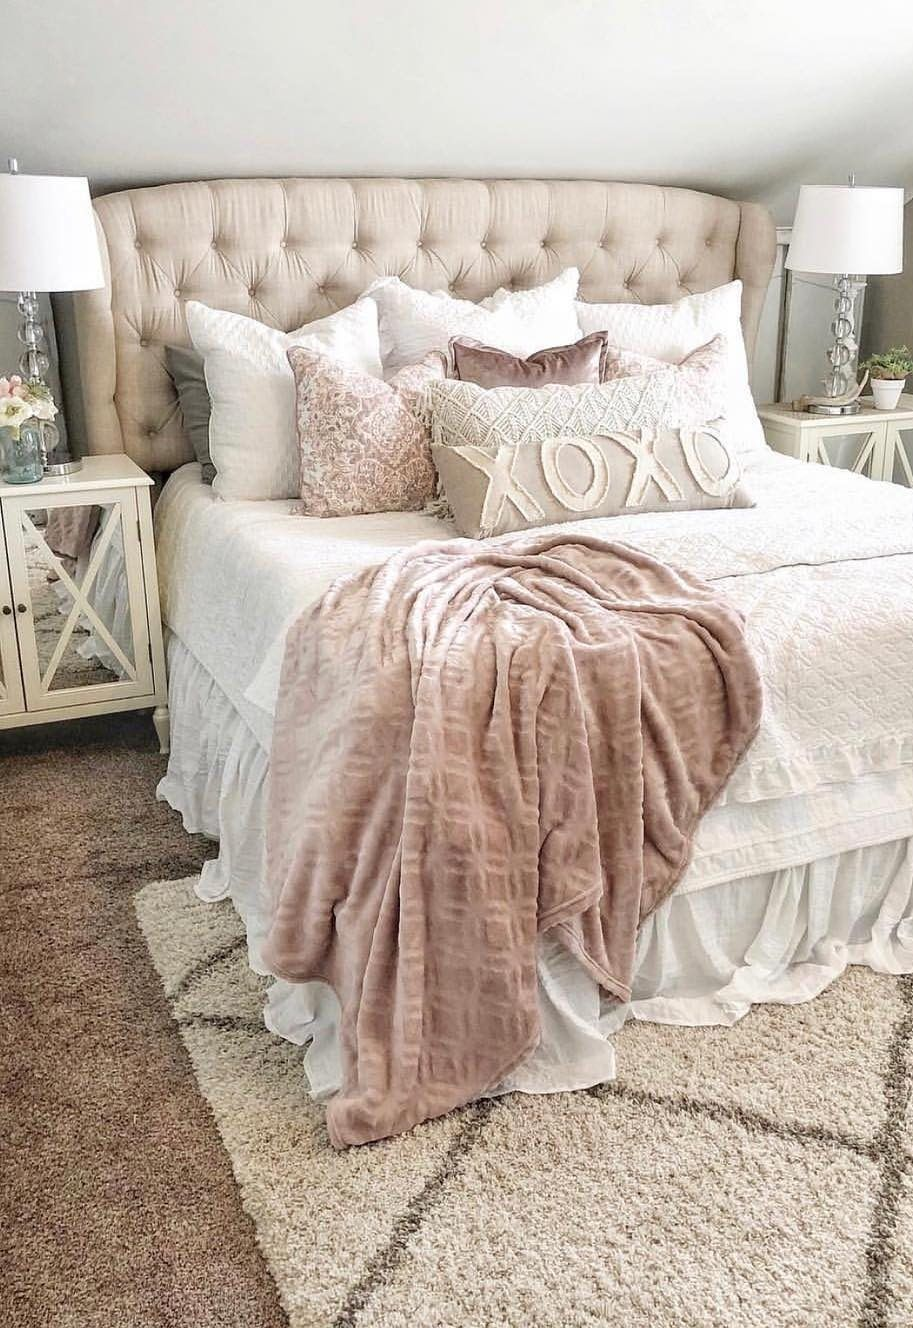 63 Cute And Modern Bedroom Interior Design Ideas 2018 Page 24 Of 63 Lasdiest Com Daily Women Blog In 2020 Modern Bedroom Interior Beauty Bedrooms Bedroom Interior